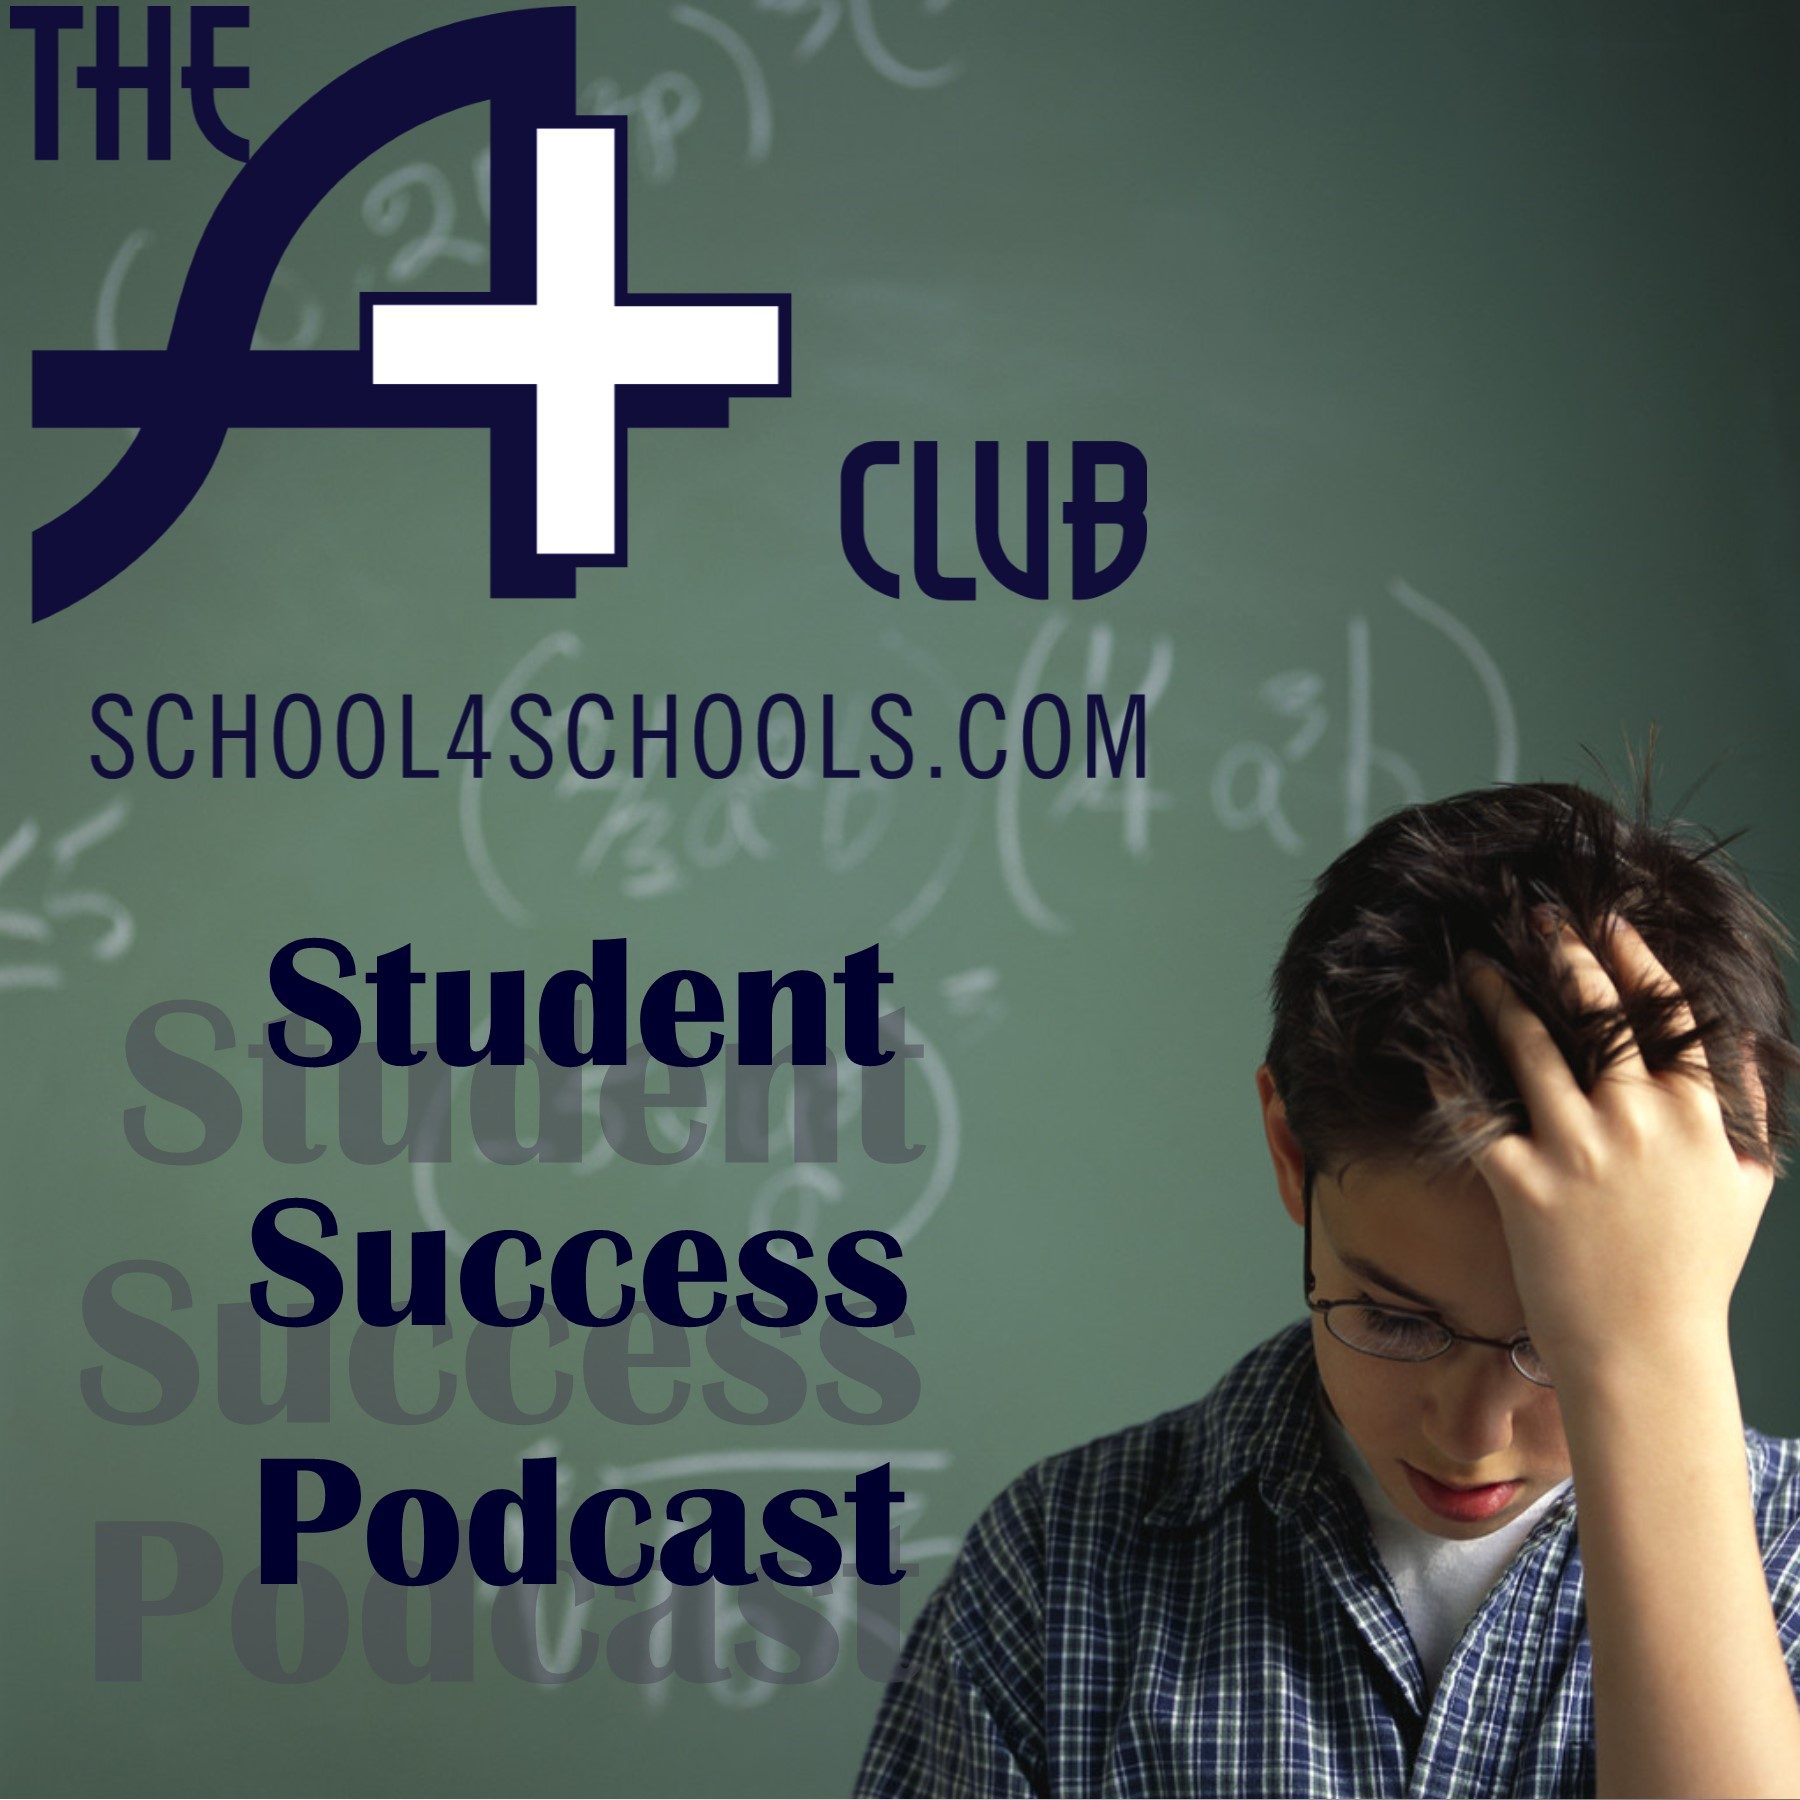 Student Success Podcast & Blog